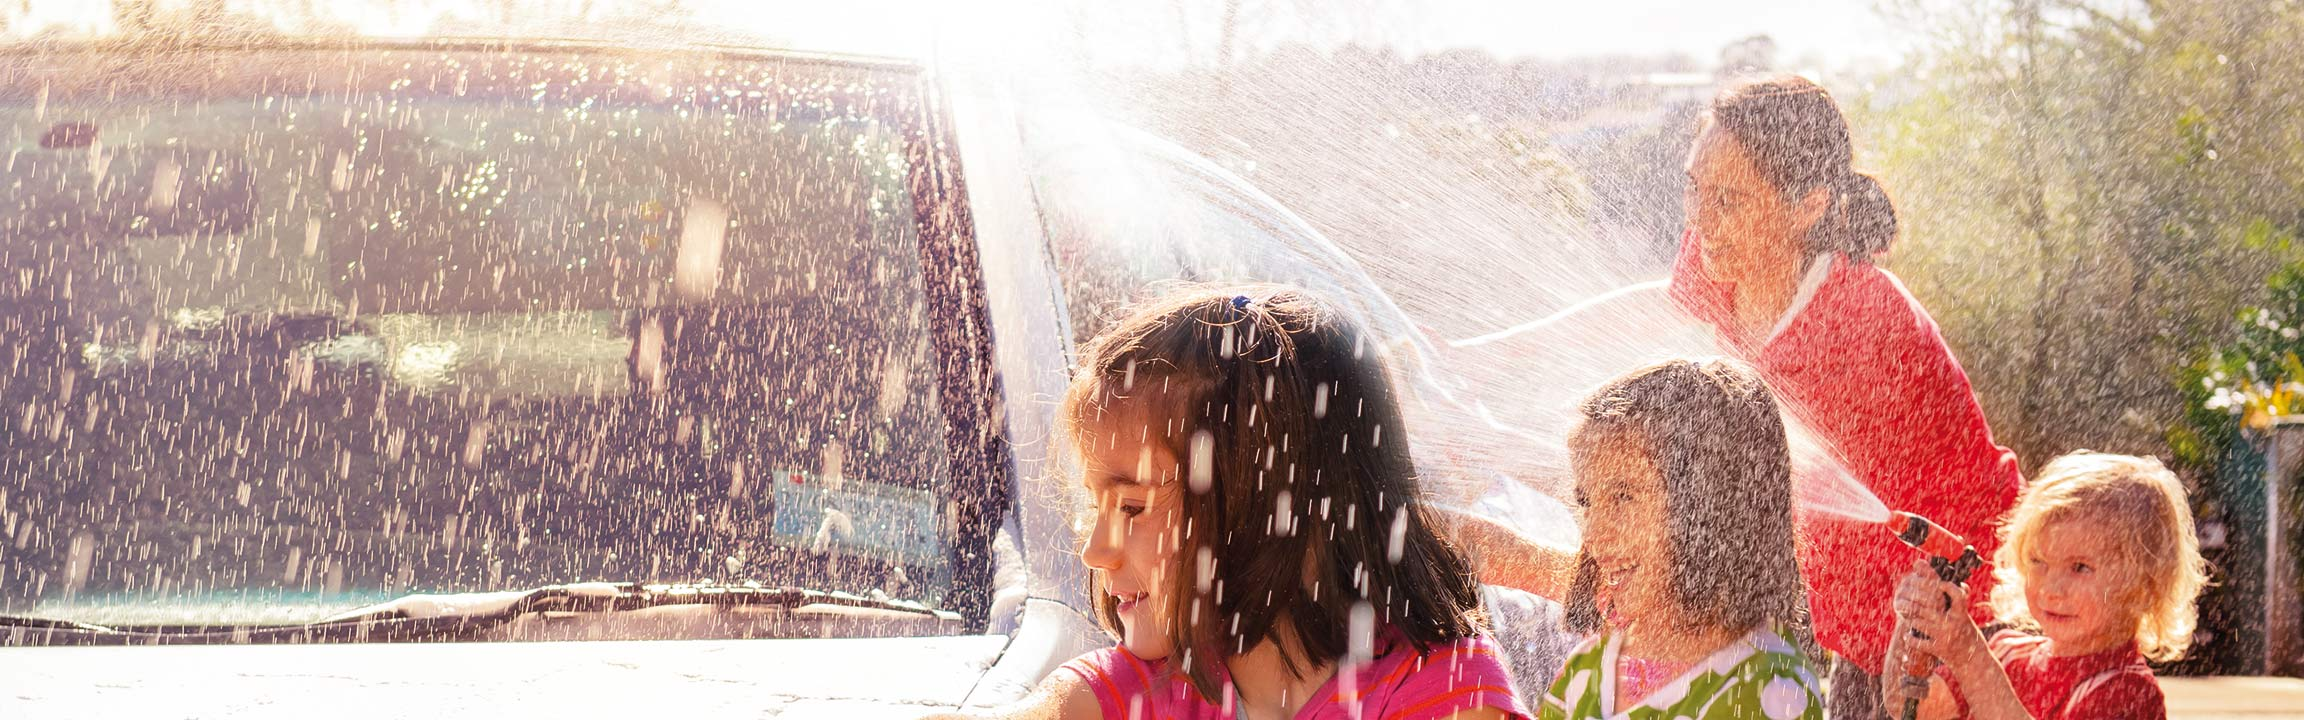 Children cleaning a car